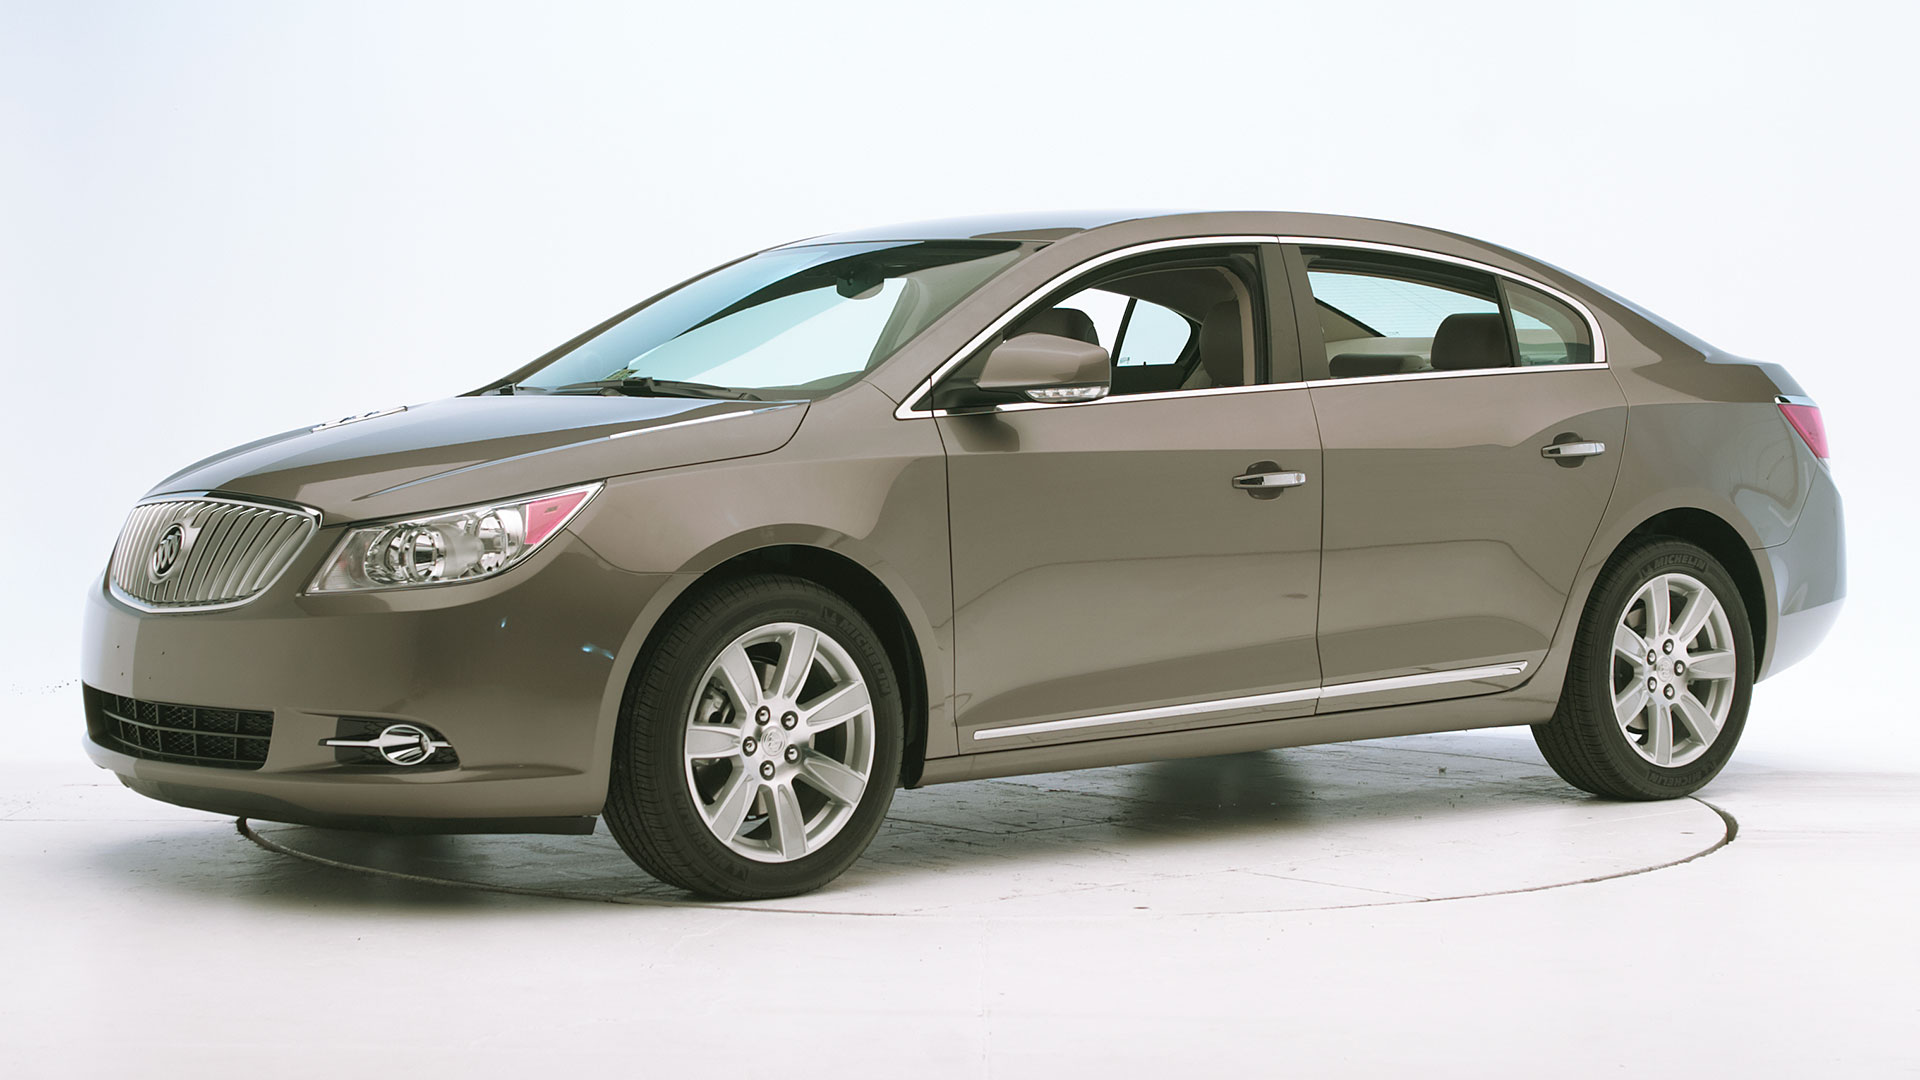 2013 Buick LaCrosse 4-door sedan